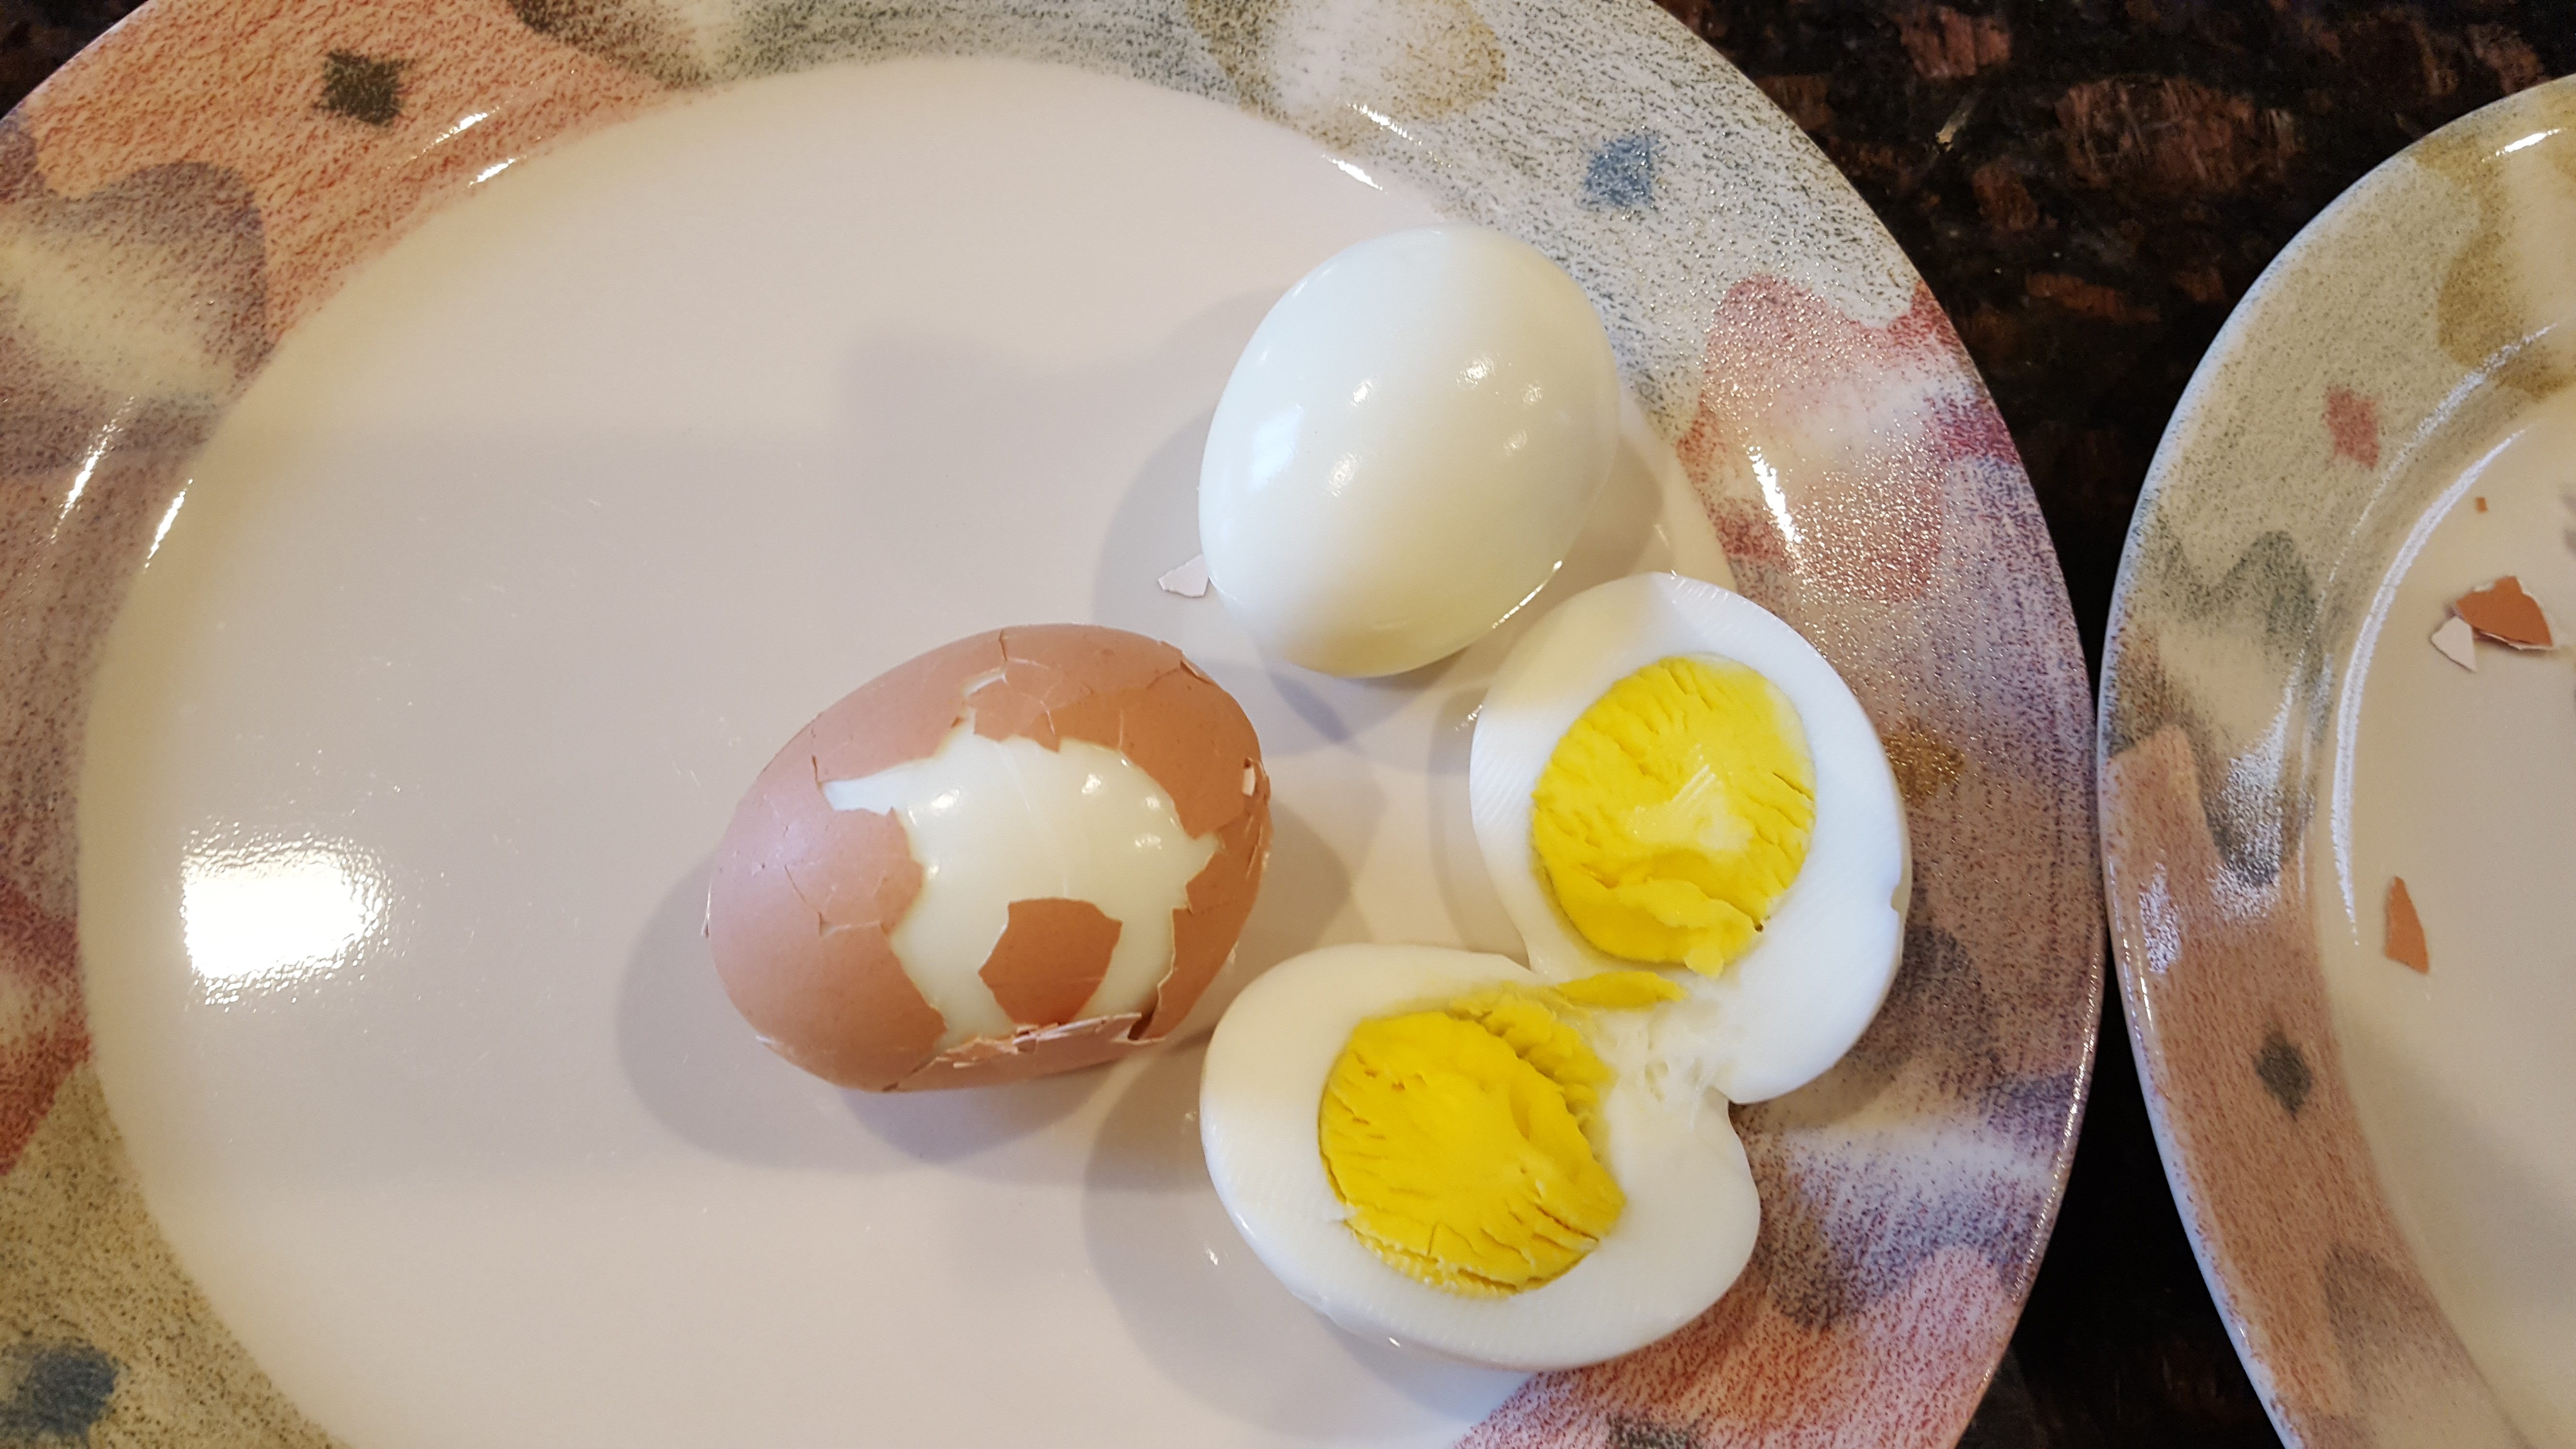 It Made Hard Boiled Eggs As They Should Be: Easy!